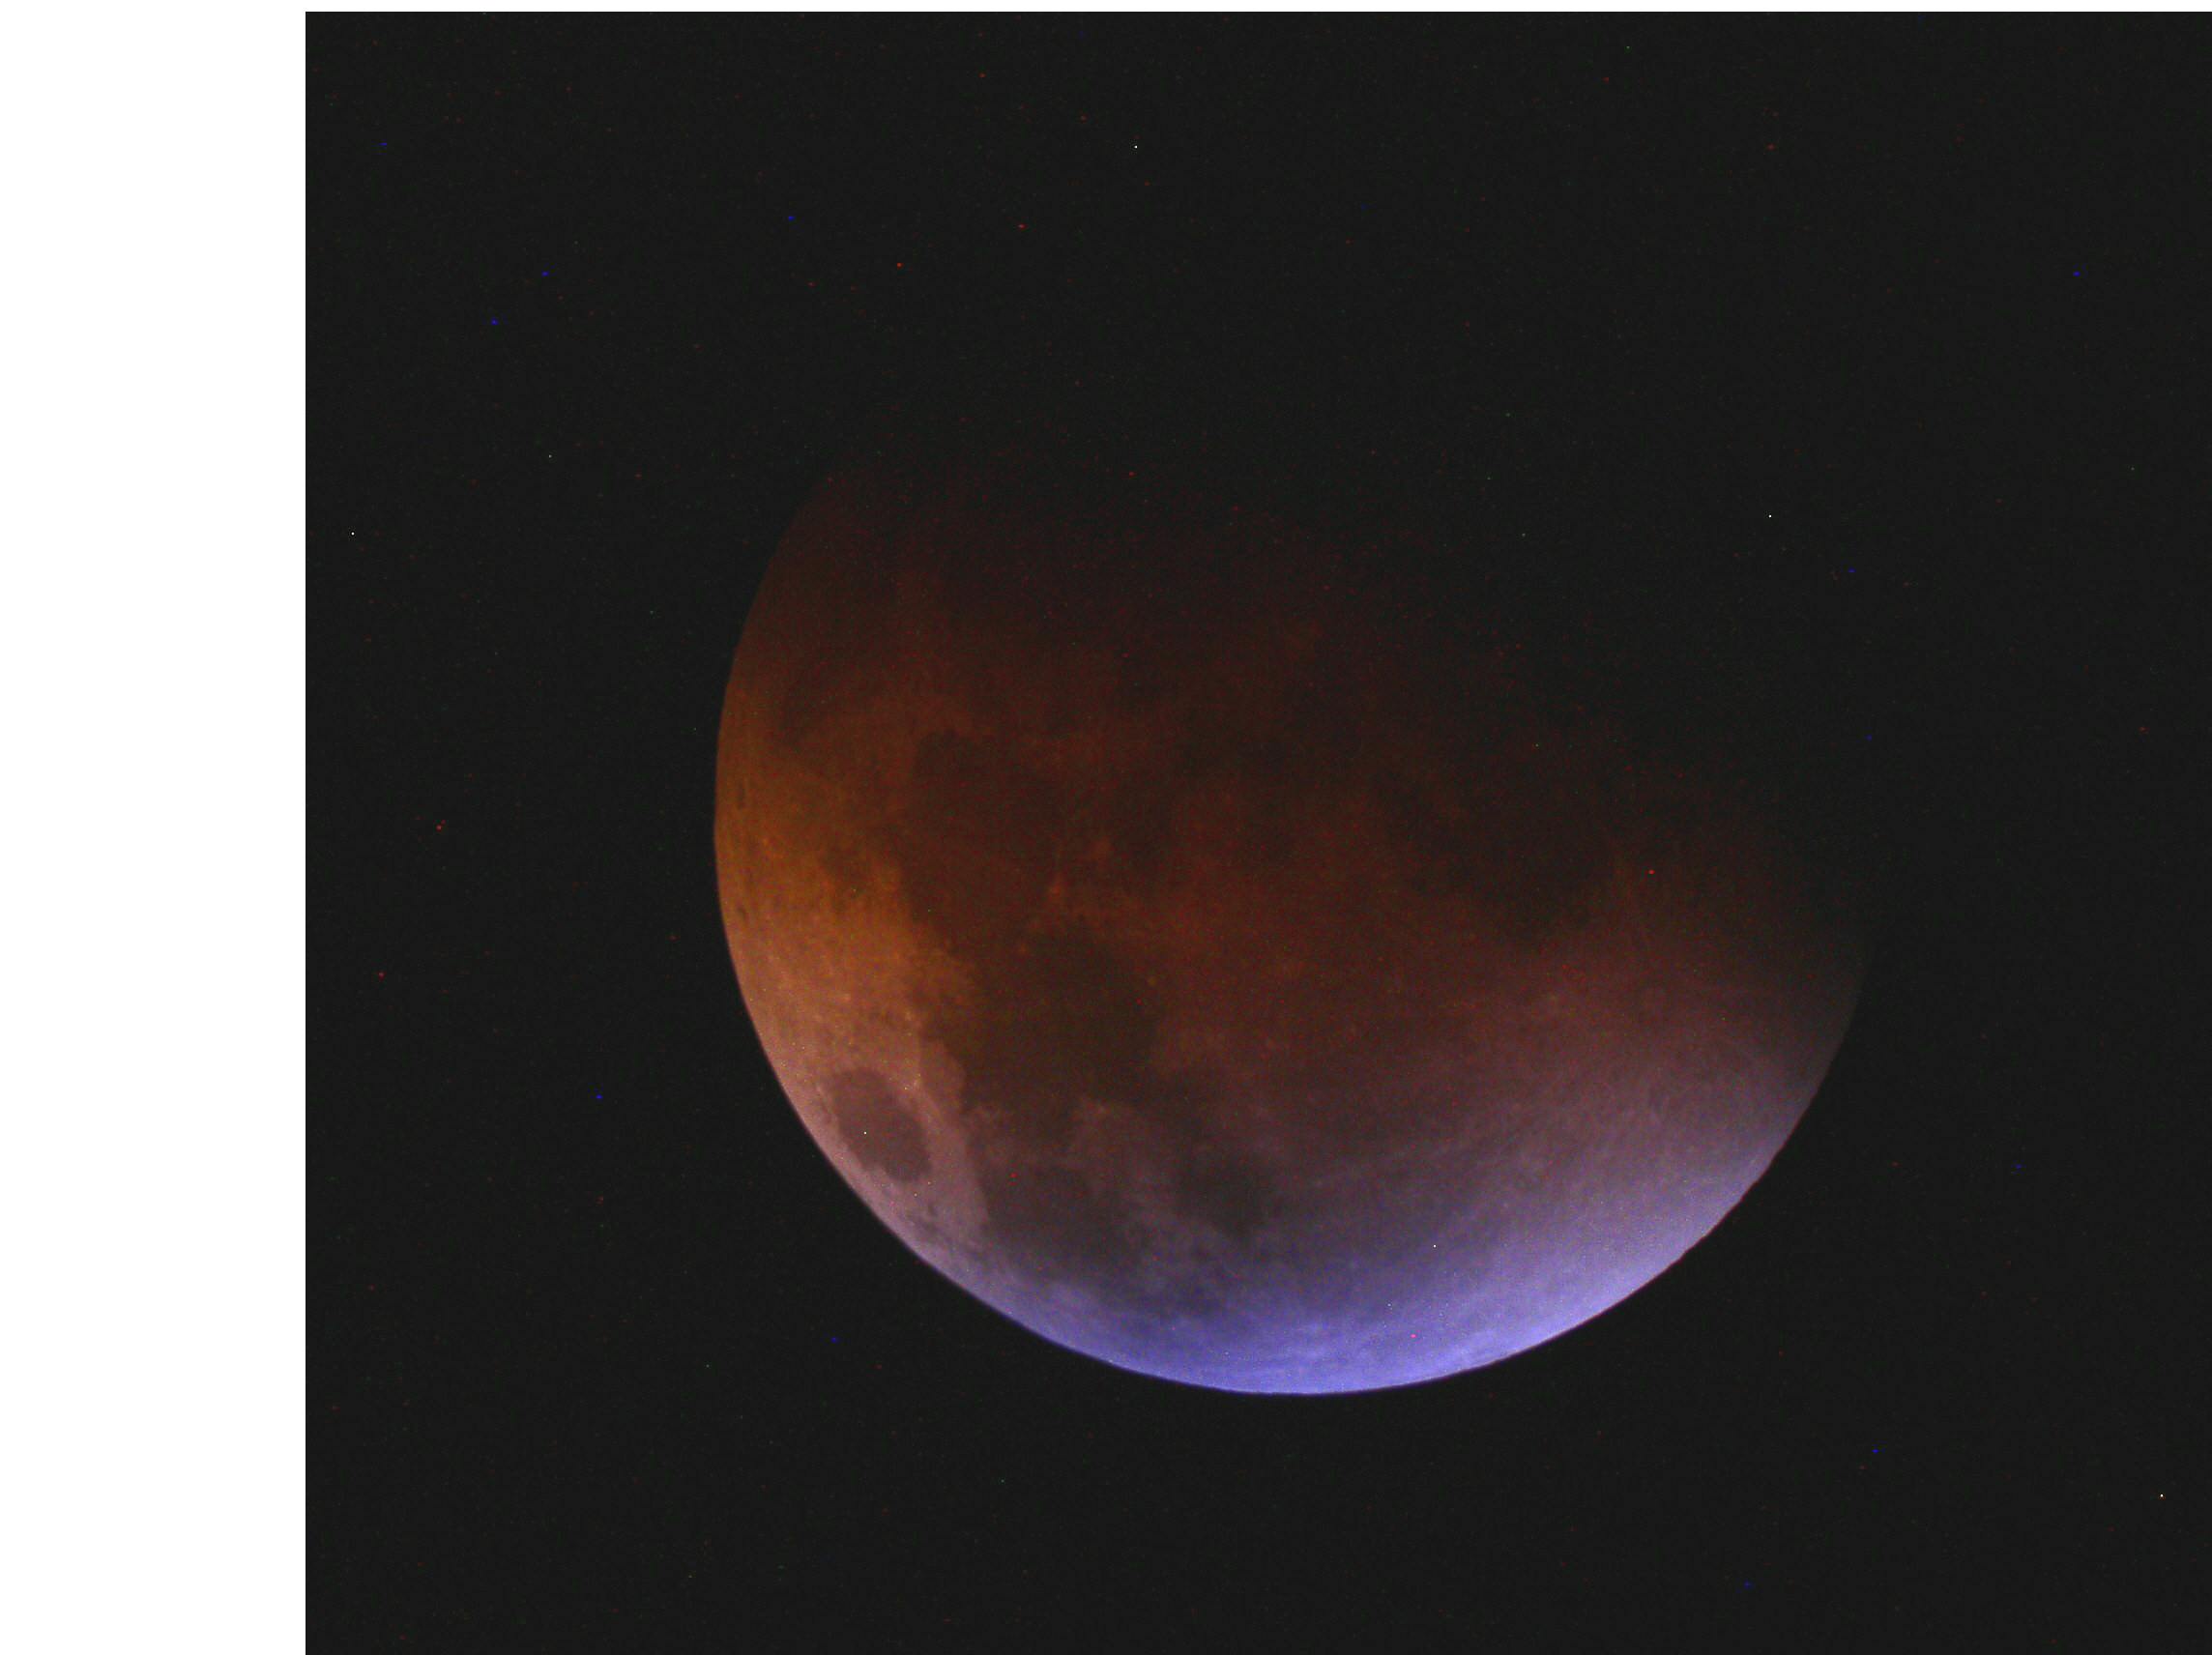 moon_eclipse4